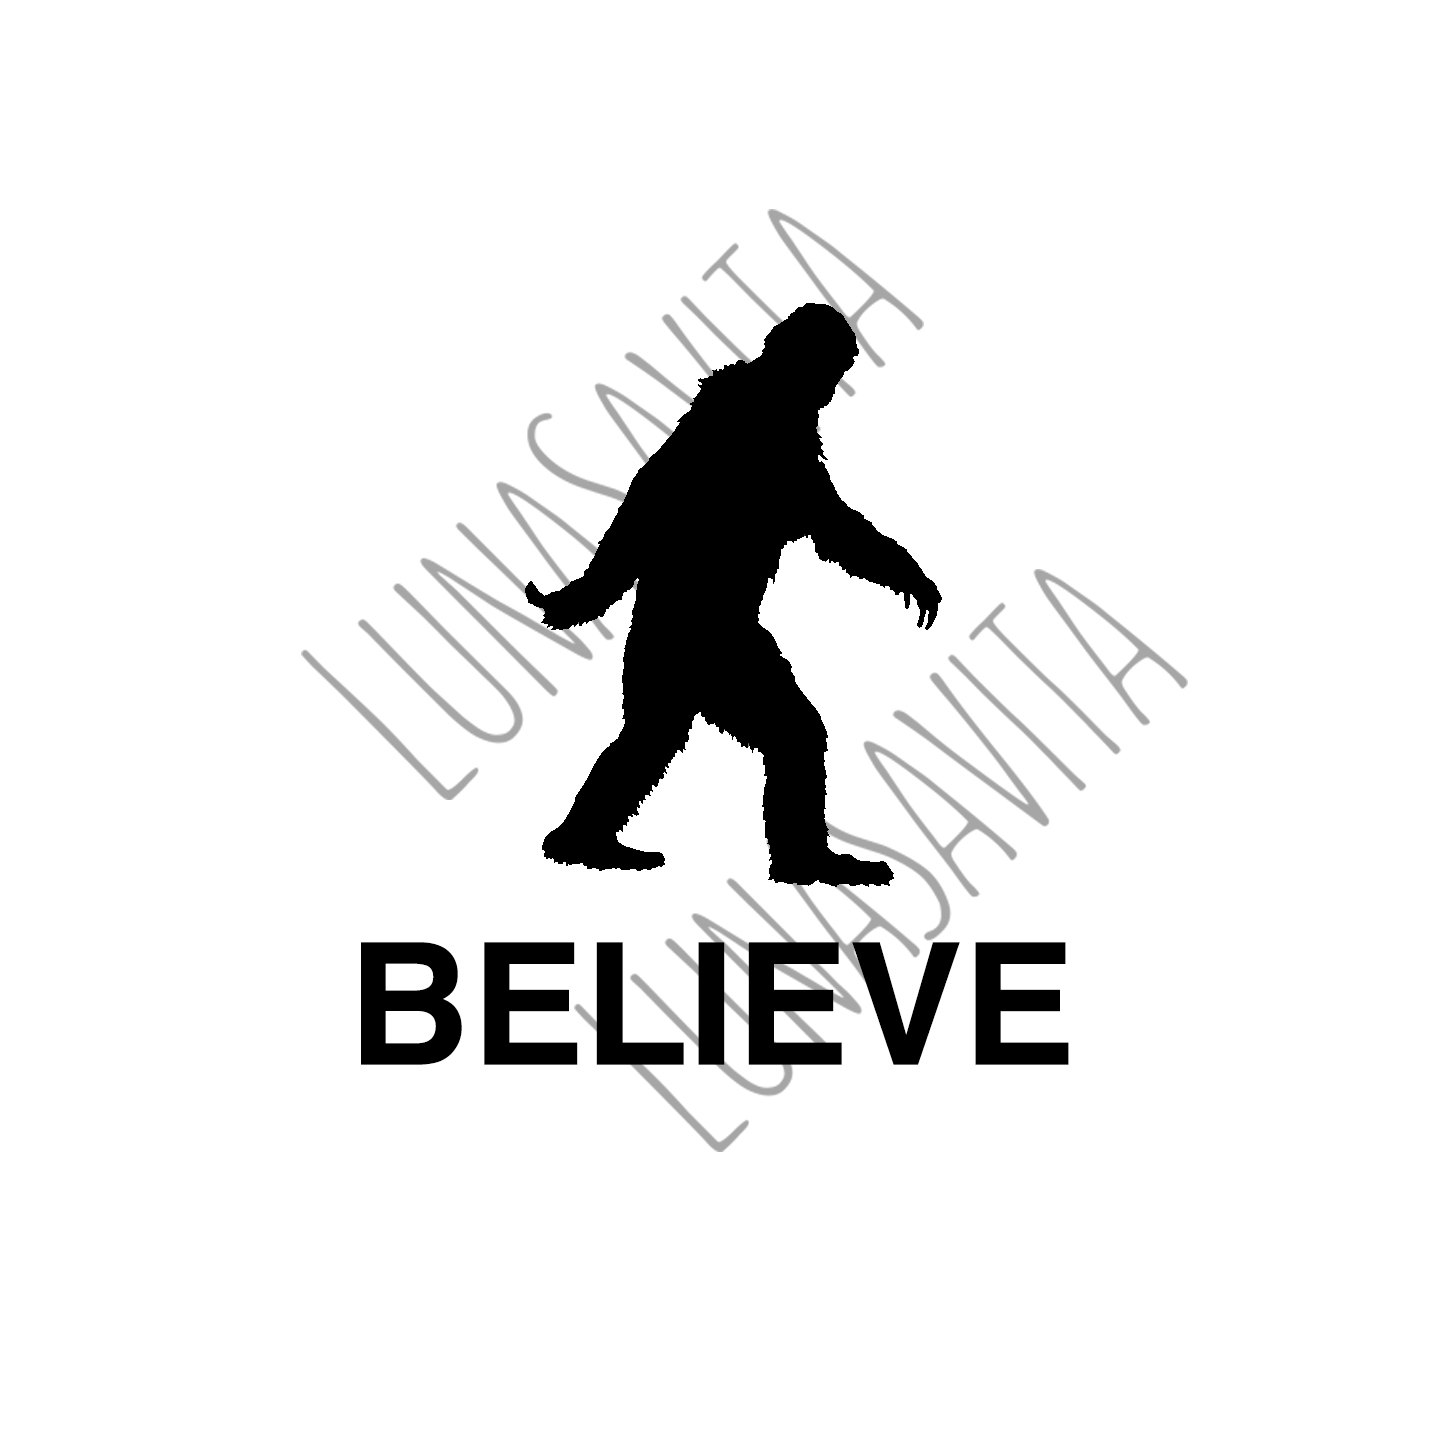 Bigfoot svg #16, Download drawings